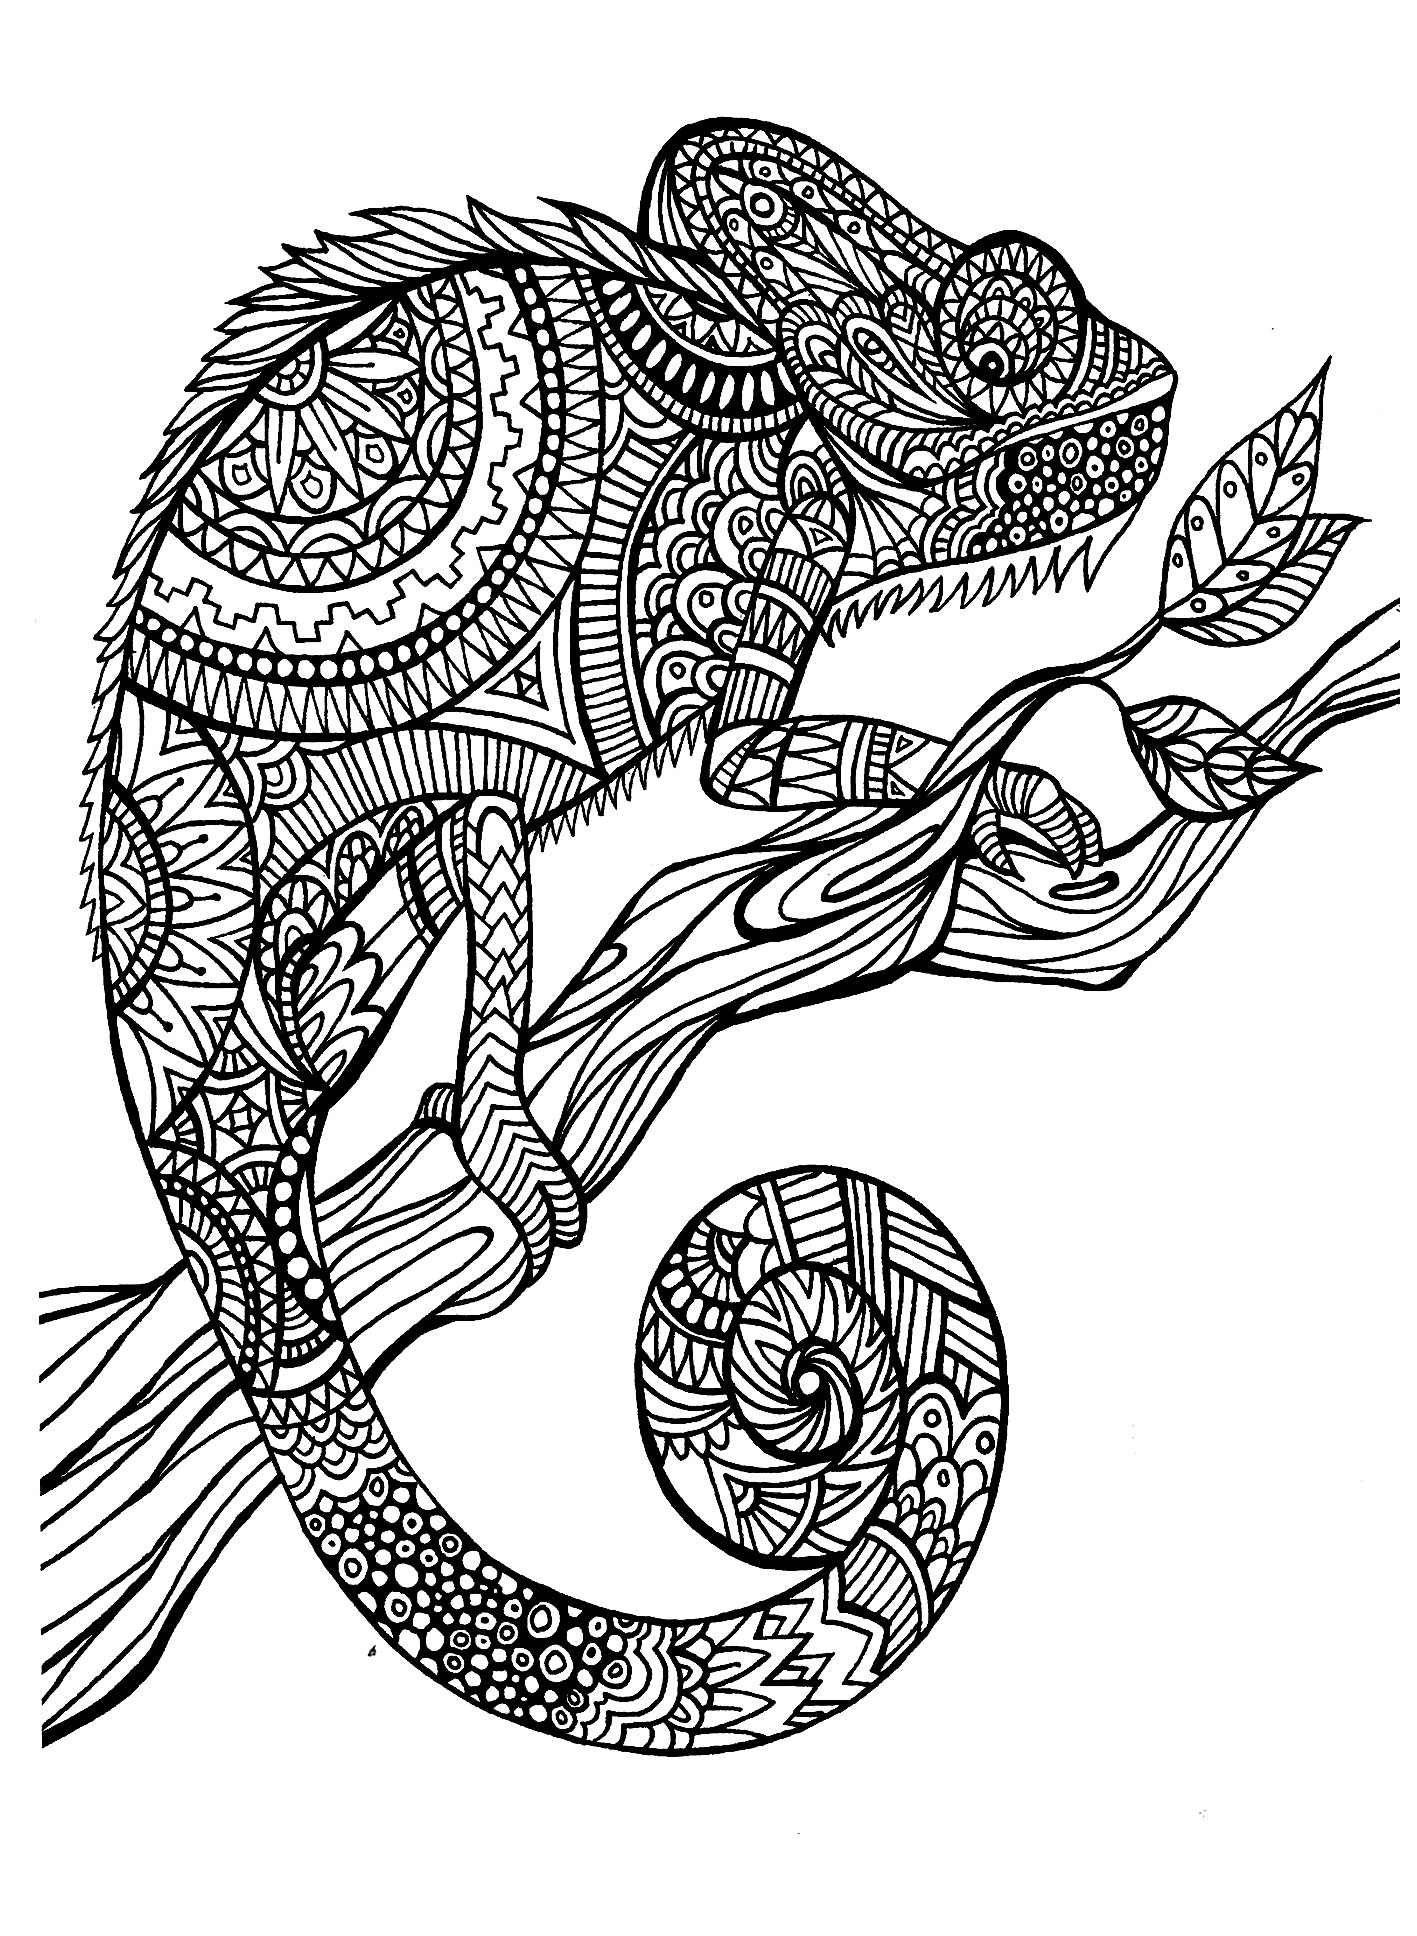 a magnificien cameleon to color drawn with zentangle patterns from the gallery animals